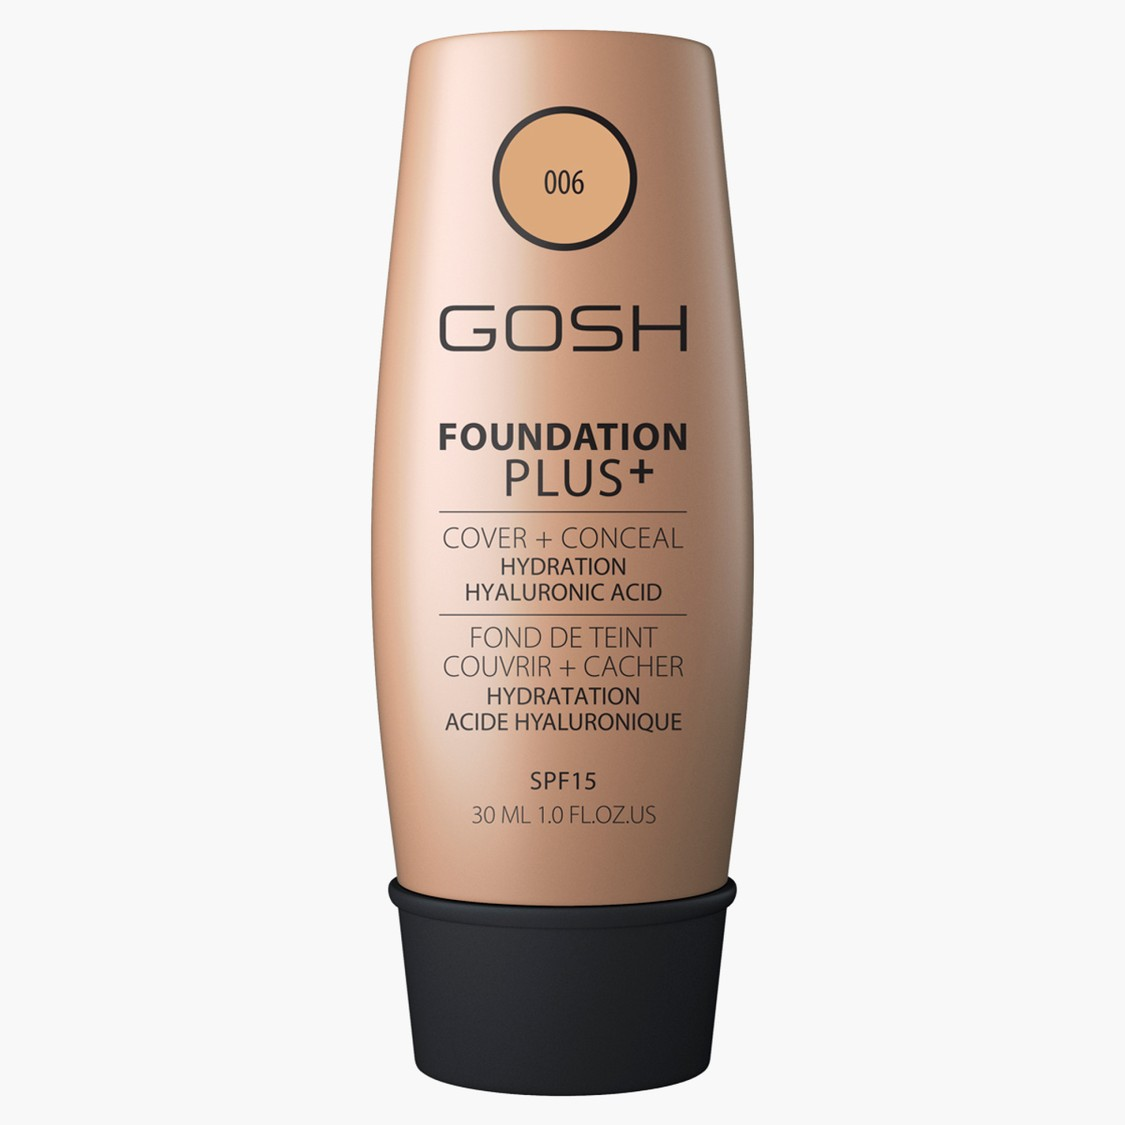 Gosh Foundation Plus with SPF 15 - 30 ml